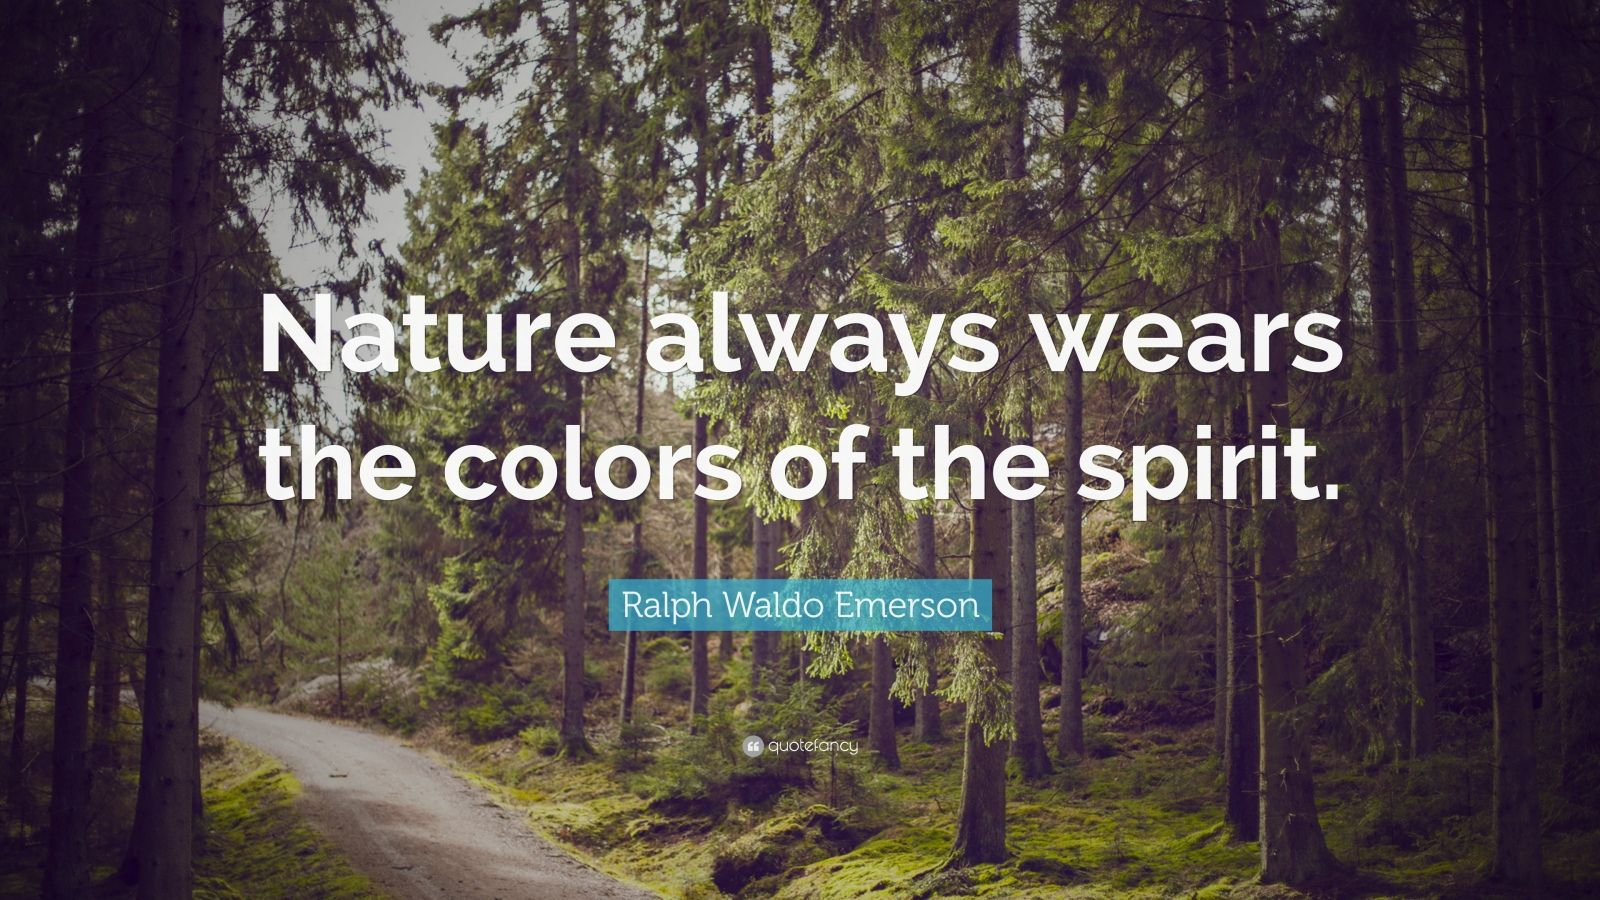 Persistence Quotes Wallpapers Ralph Waldo Emerson Quote Nature Always Wears The Colors